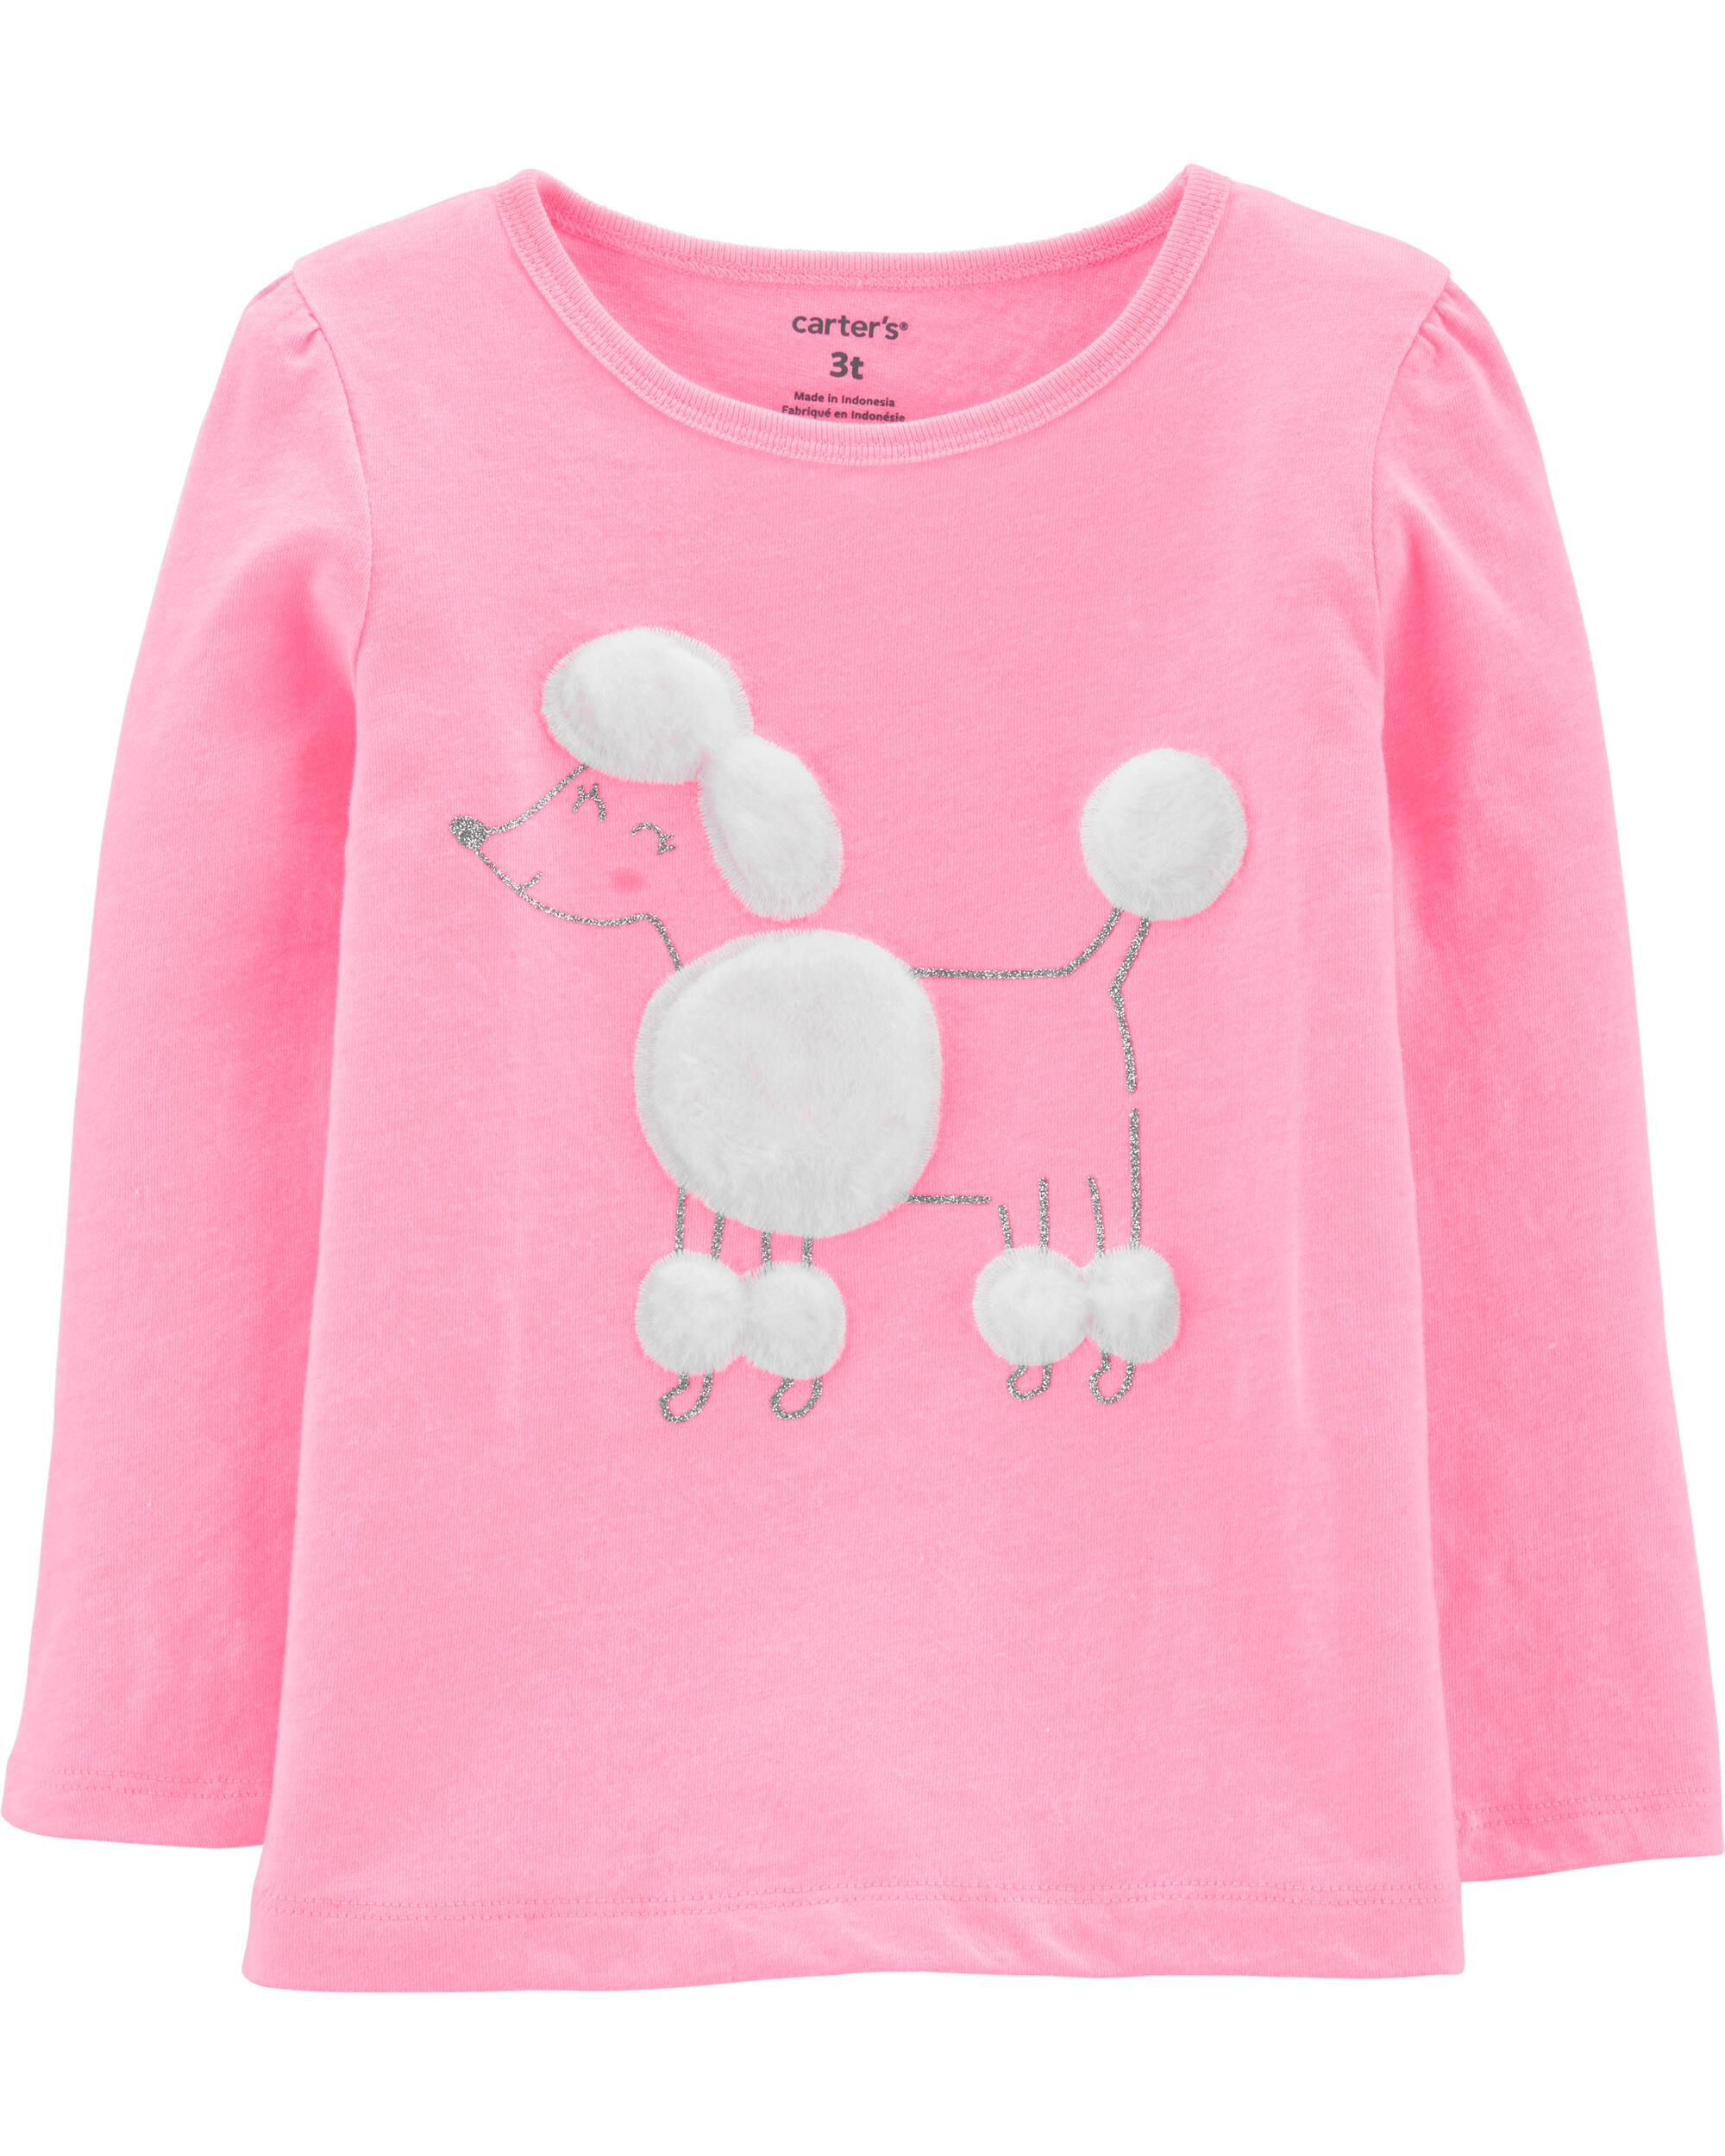 *CLEARANCE* Neon Glitter Poodle Jersey Tee